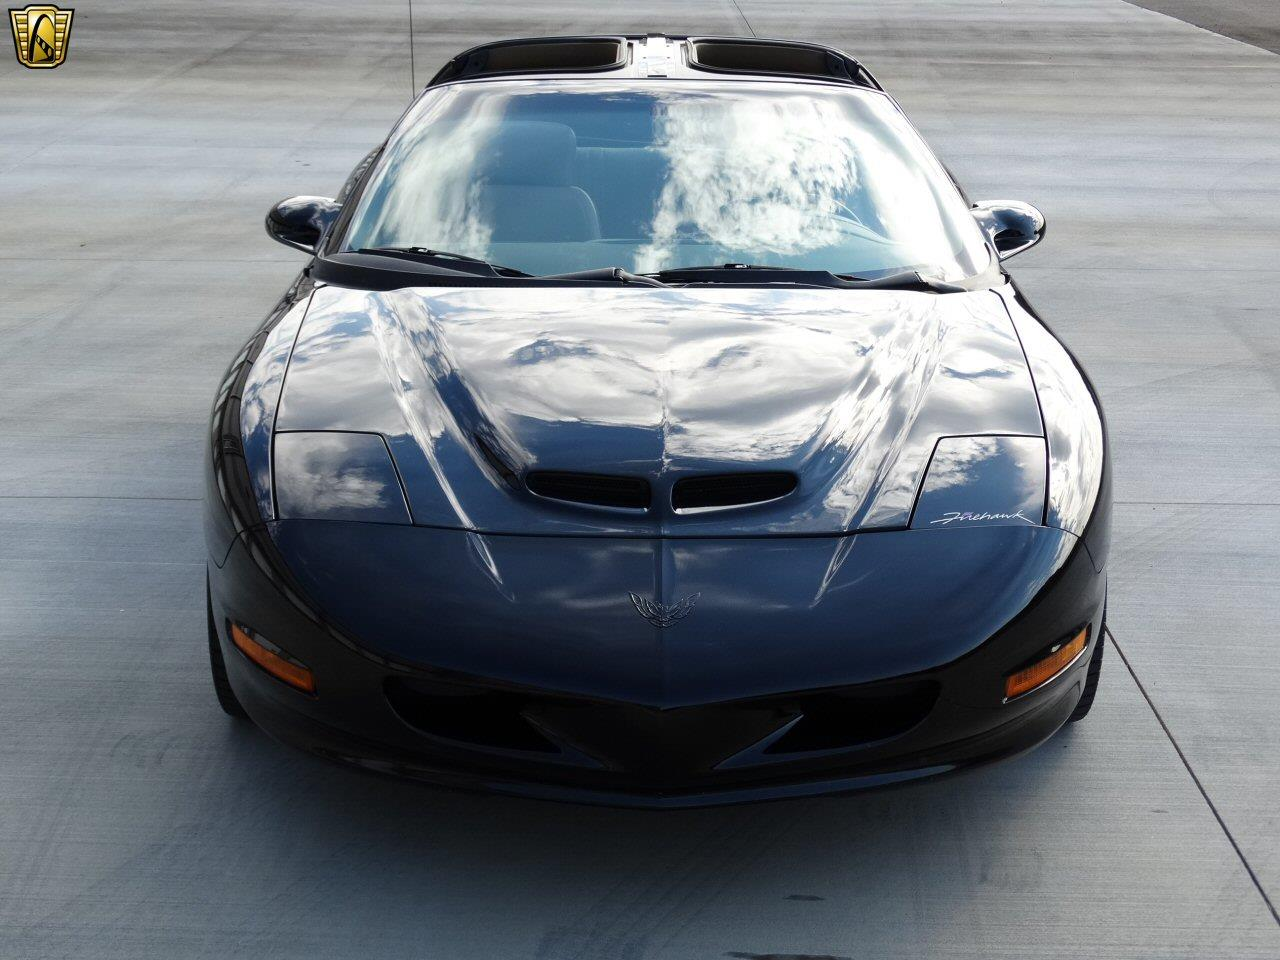 Large Picture of 1994 Pontiac Firebird located in Georgia - $20,995.00 Offered by Gateway Classic Cars - Atlanta - KF4C